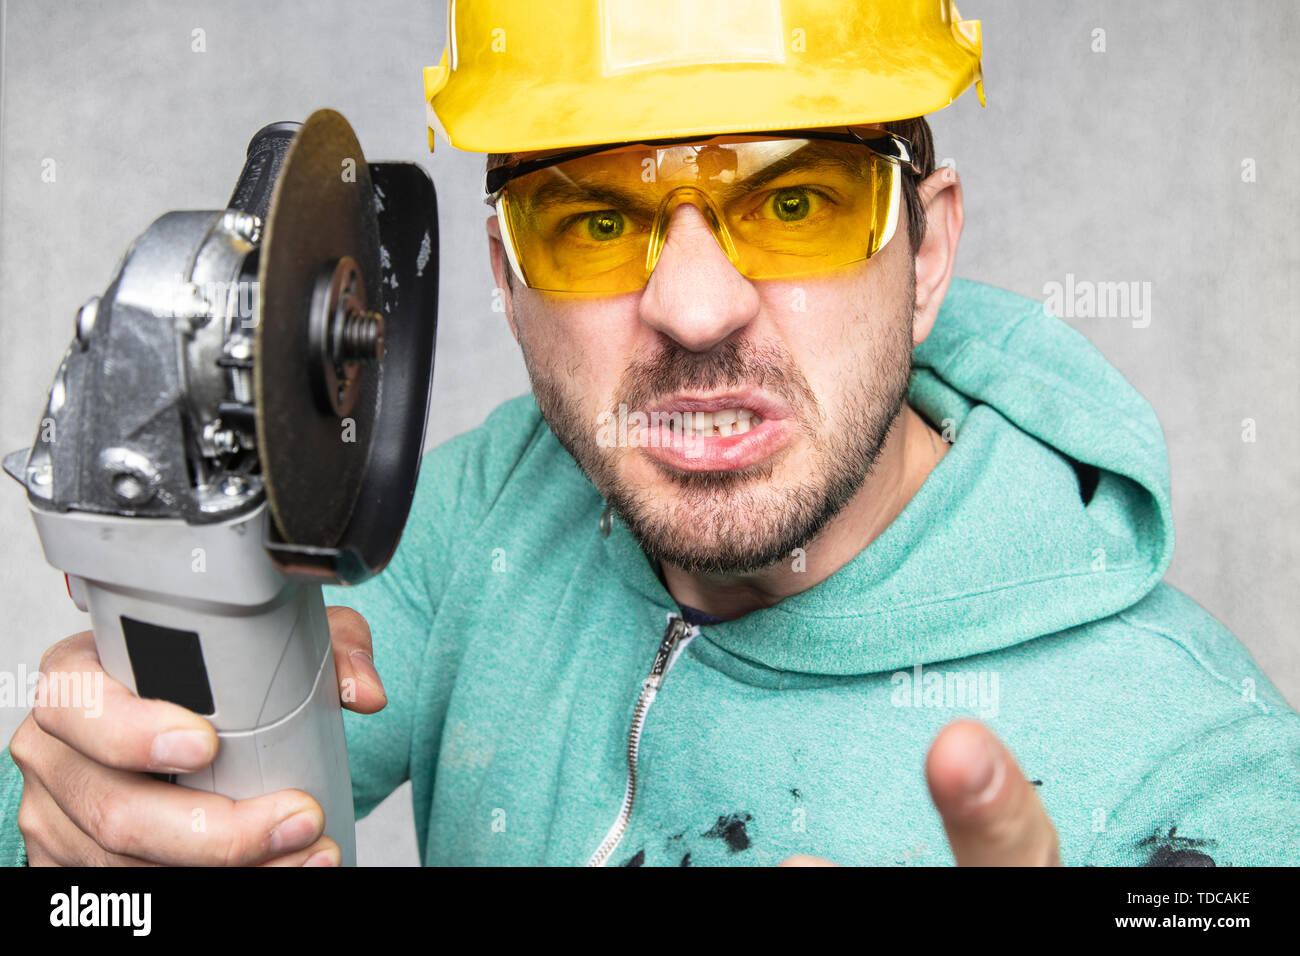 the construction worker holds an angle grinder in his hand - Stock Image